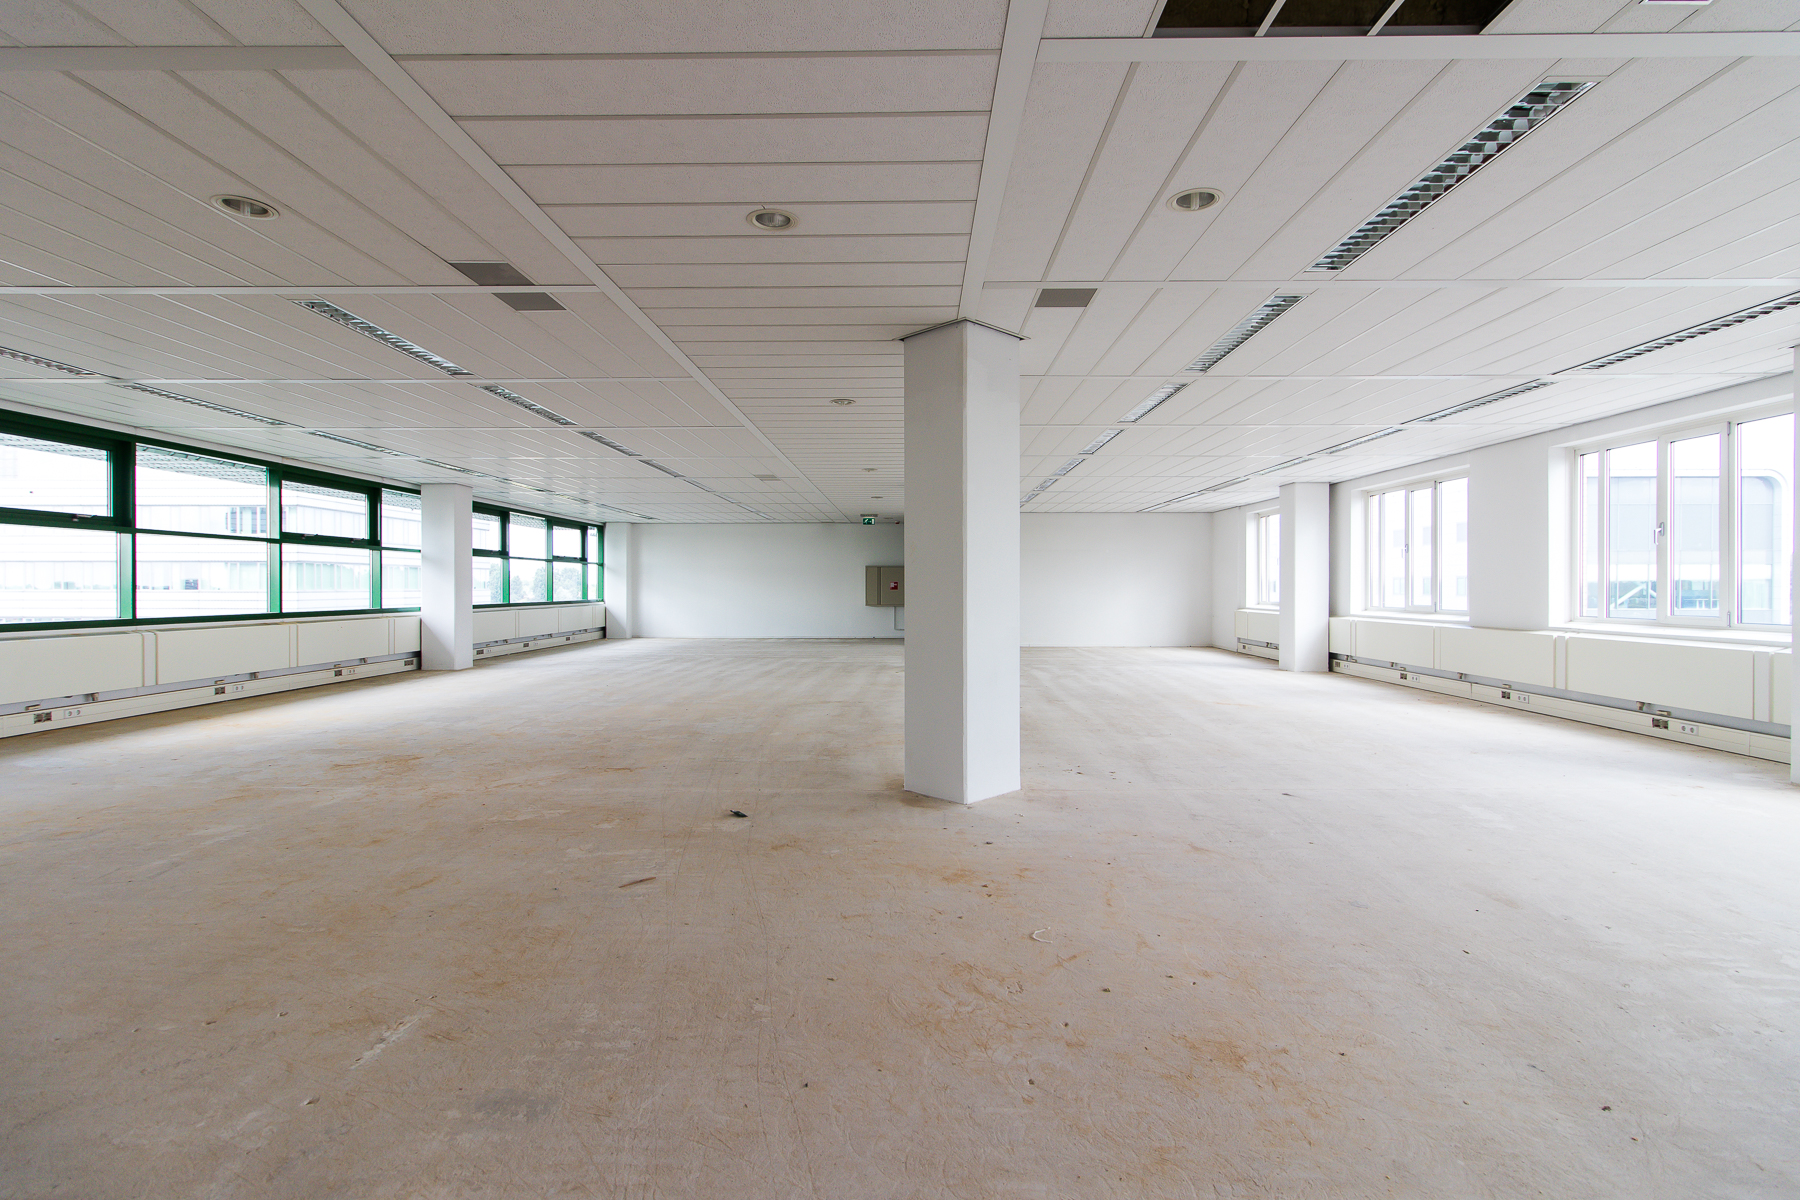 empty office space for rent not furnished yet